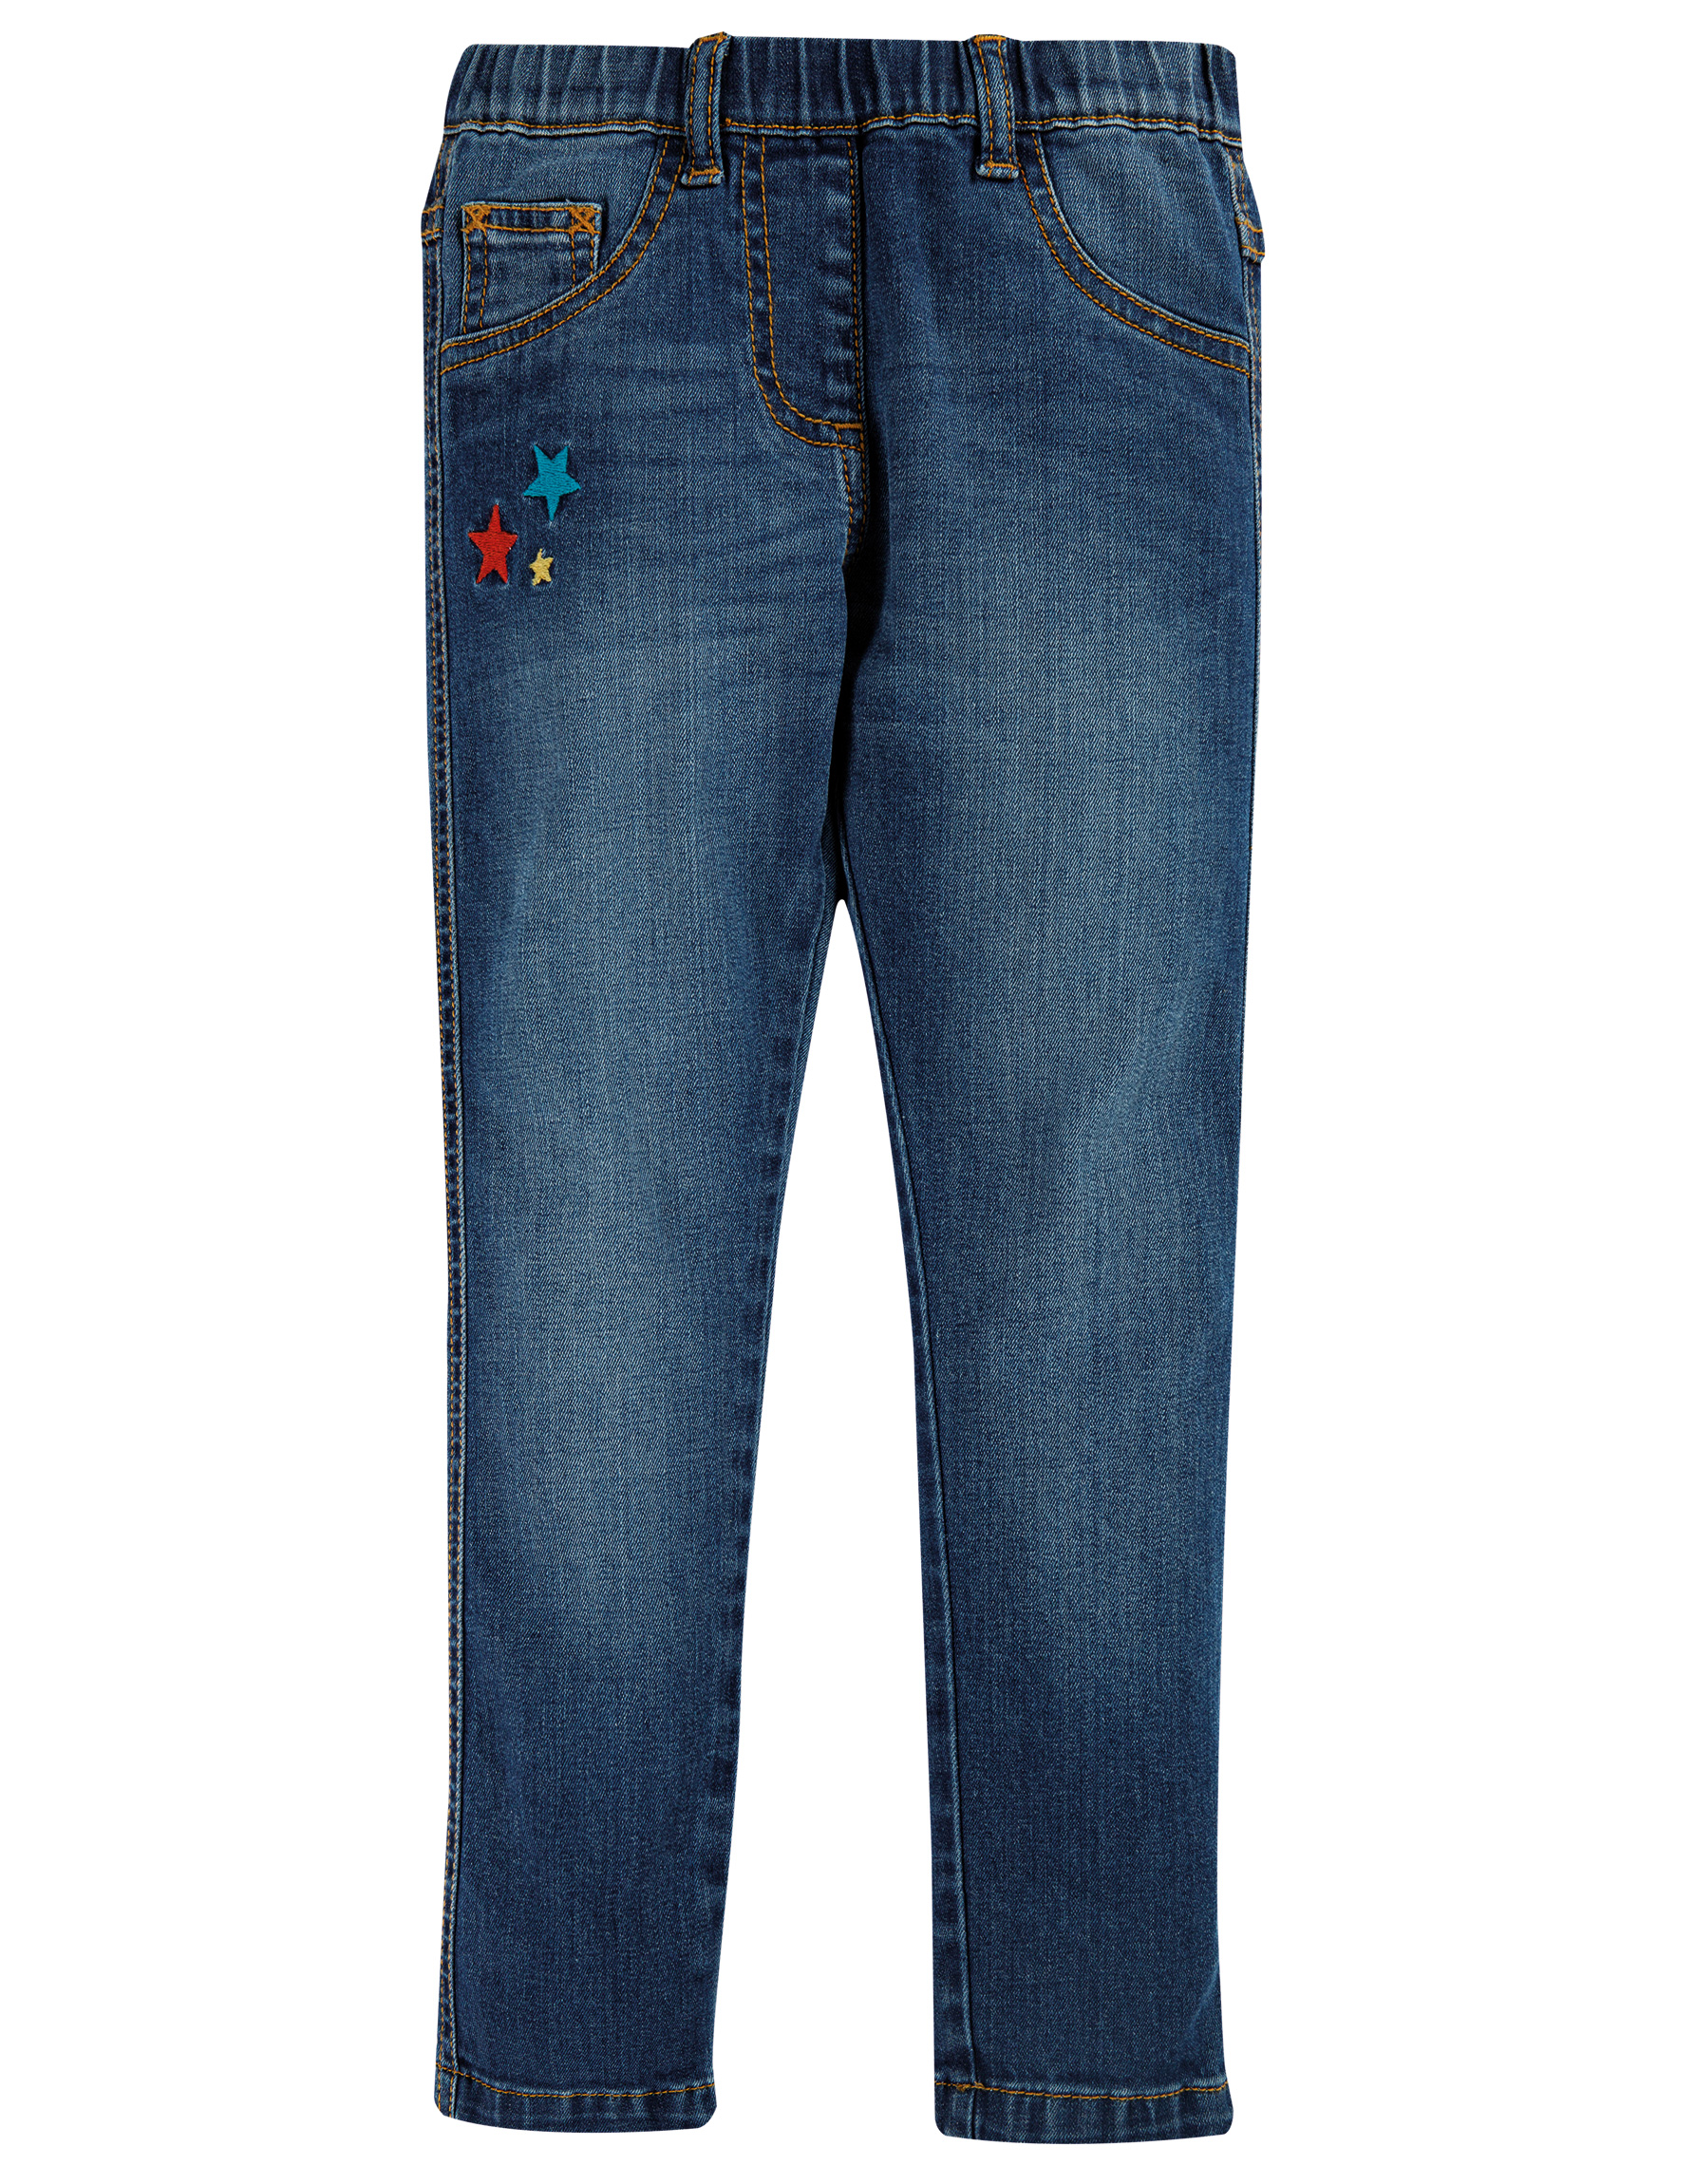 Frugi Julie Jegging, Mid Wash Denim